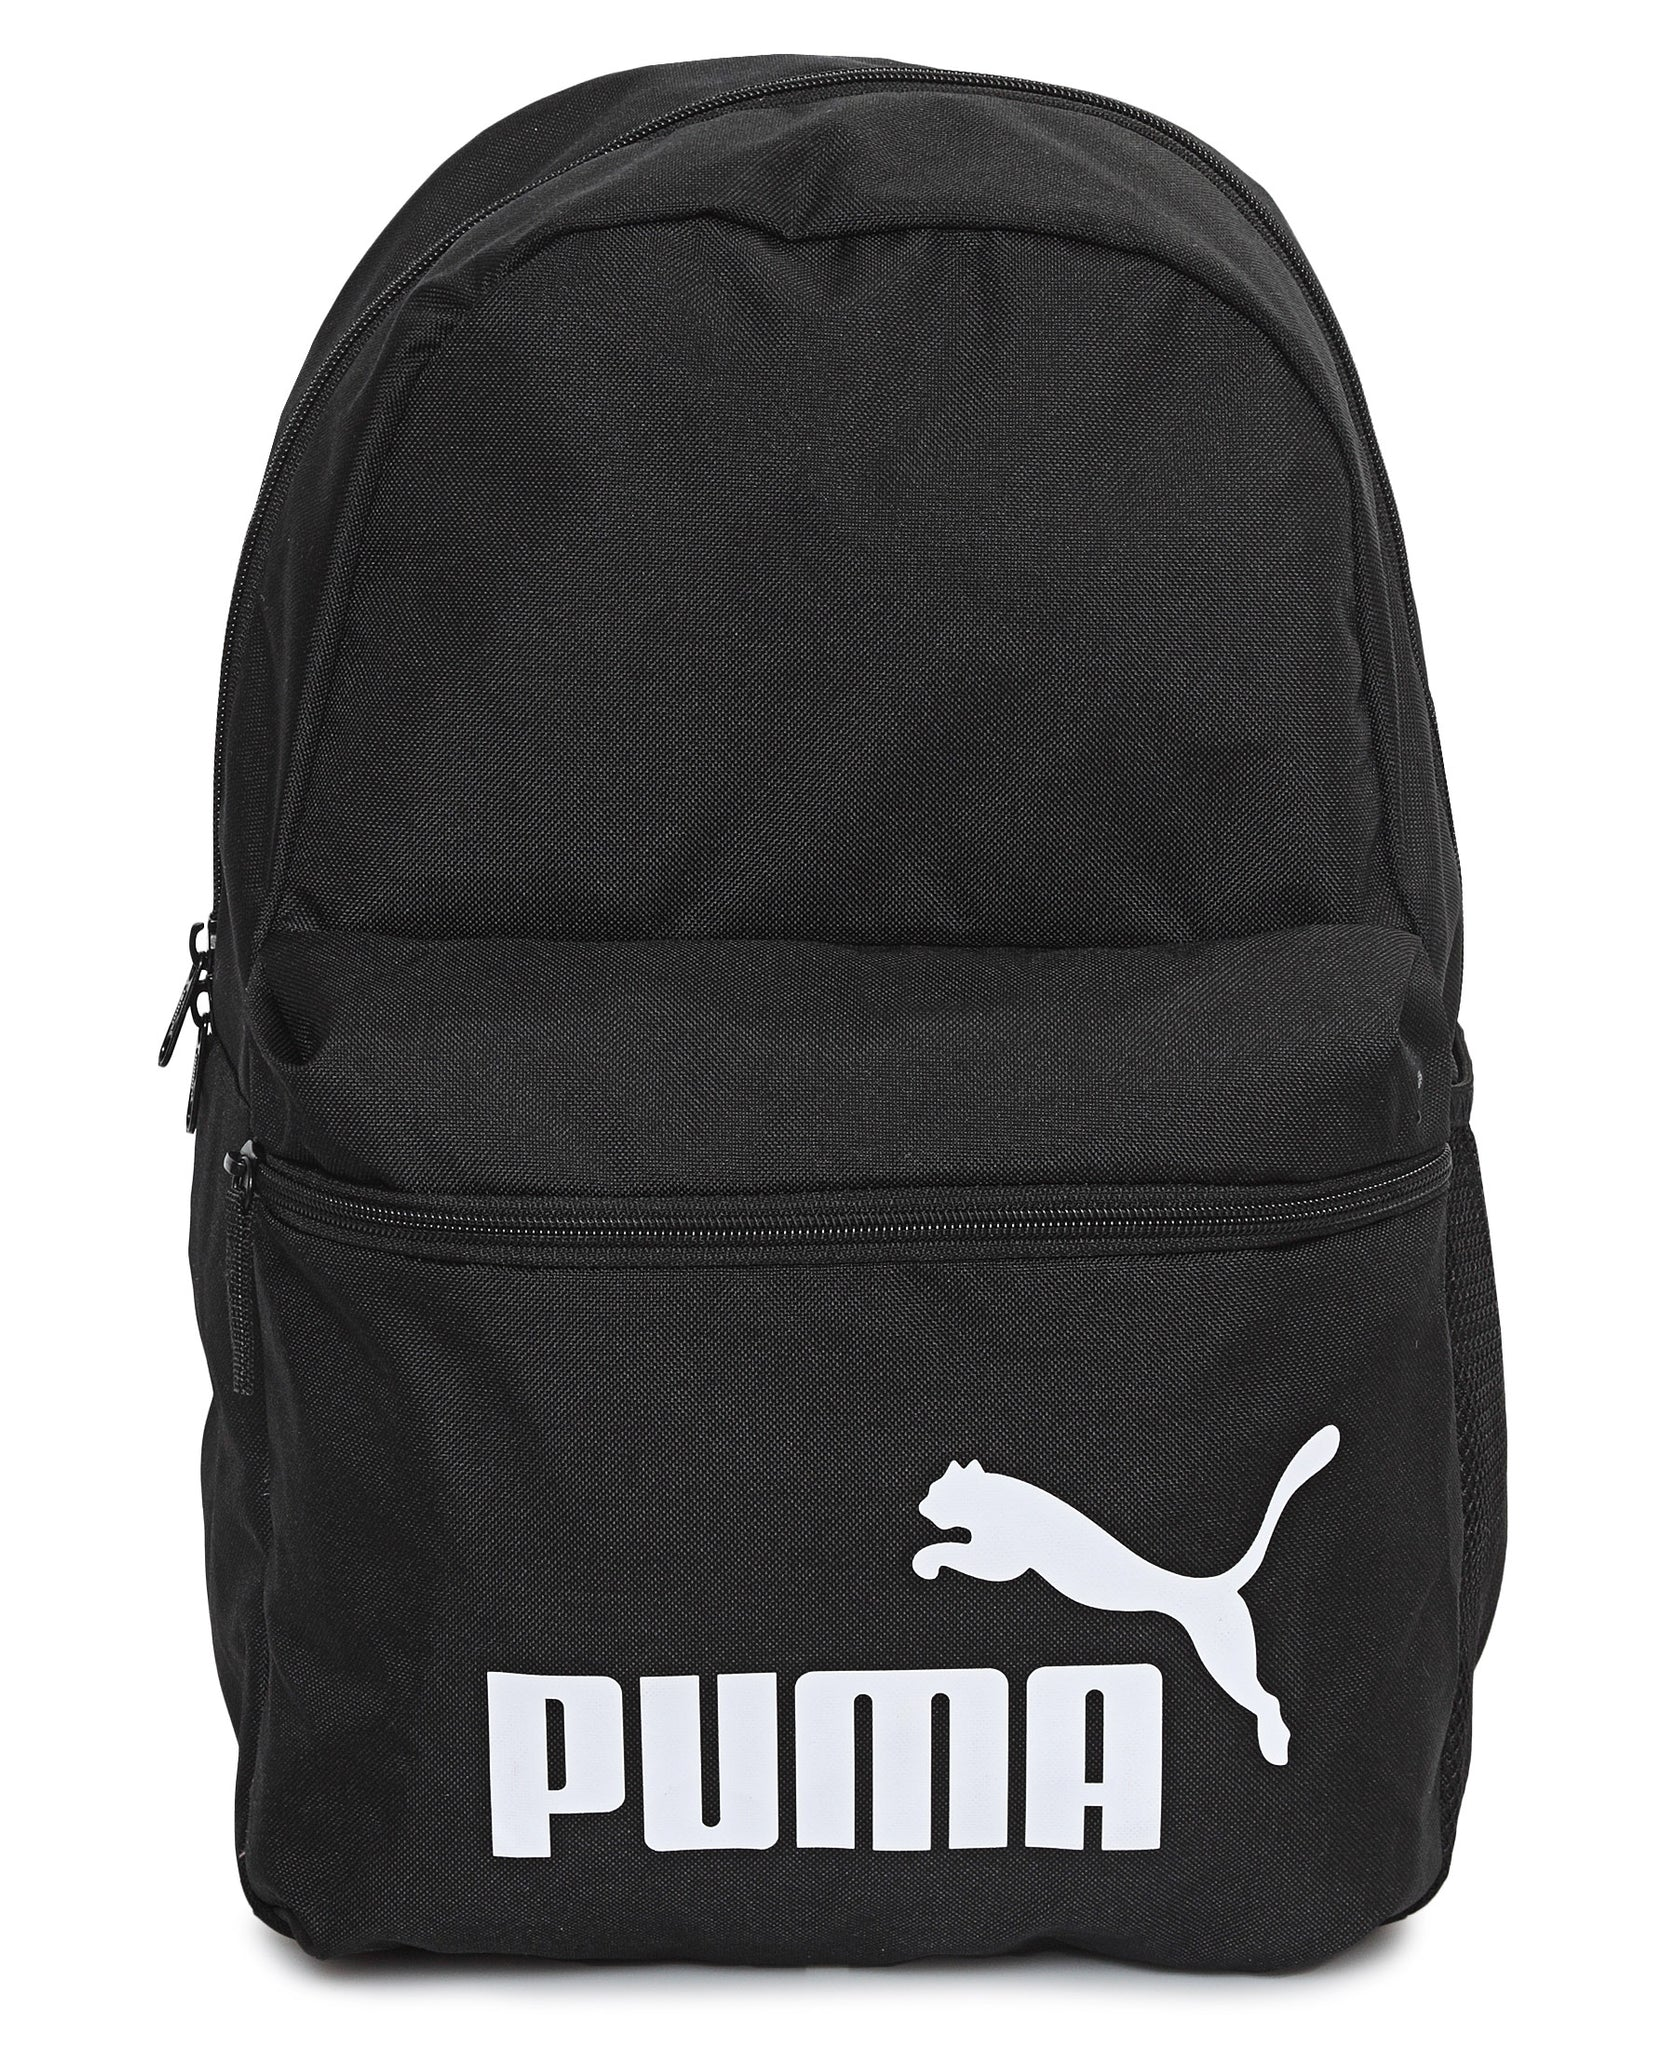 Phase Backpack - Black